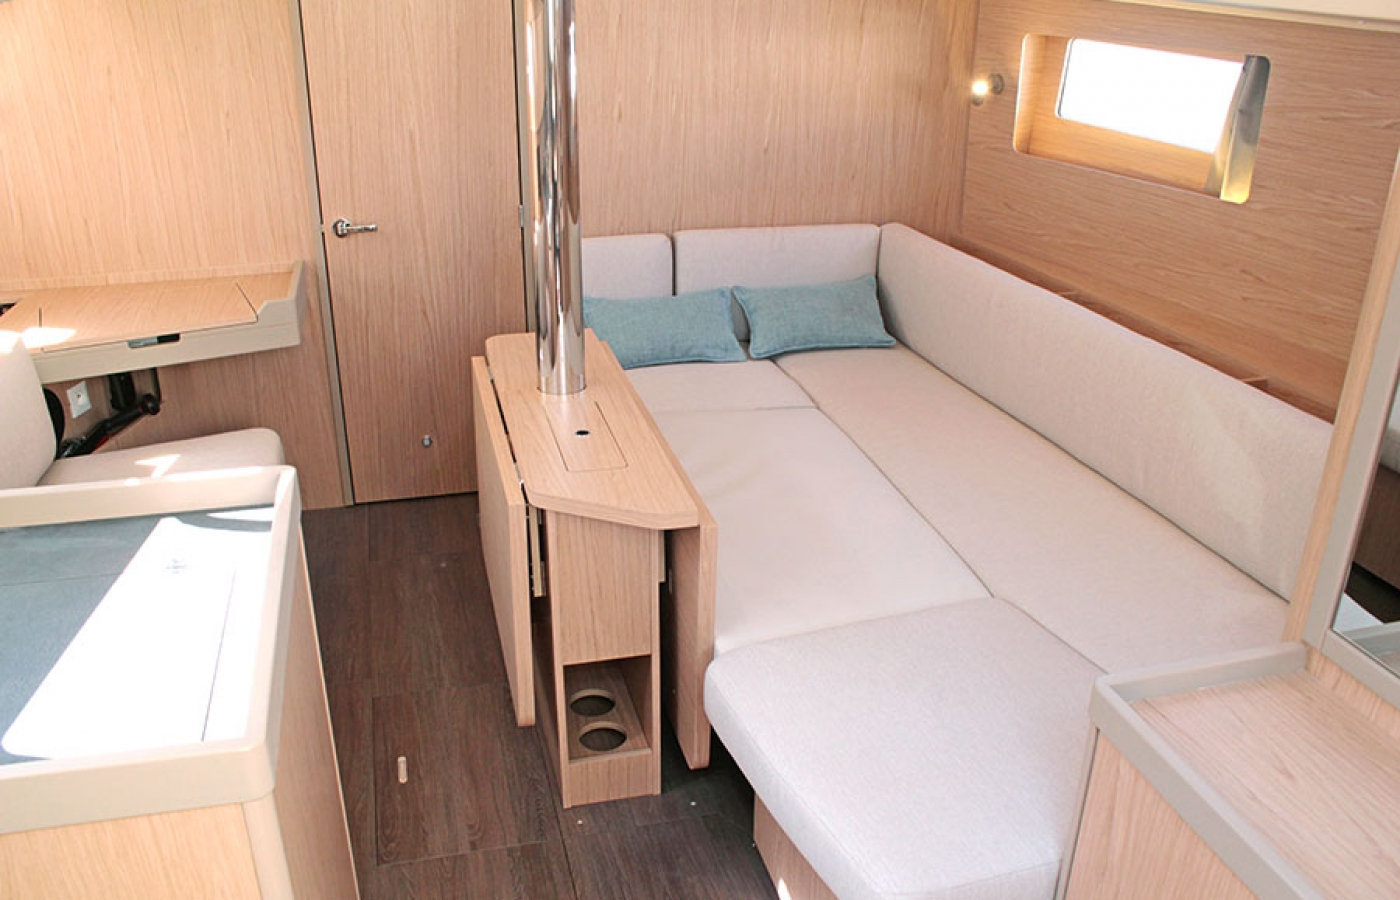 L shaped seating area in the galley transformed in to a eatra bed